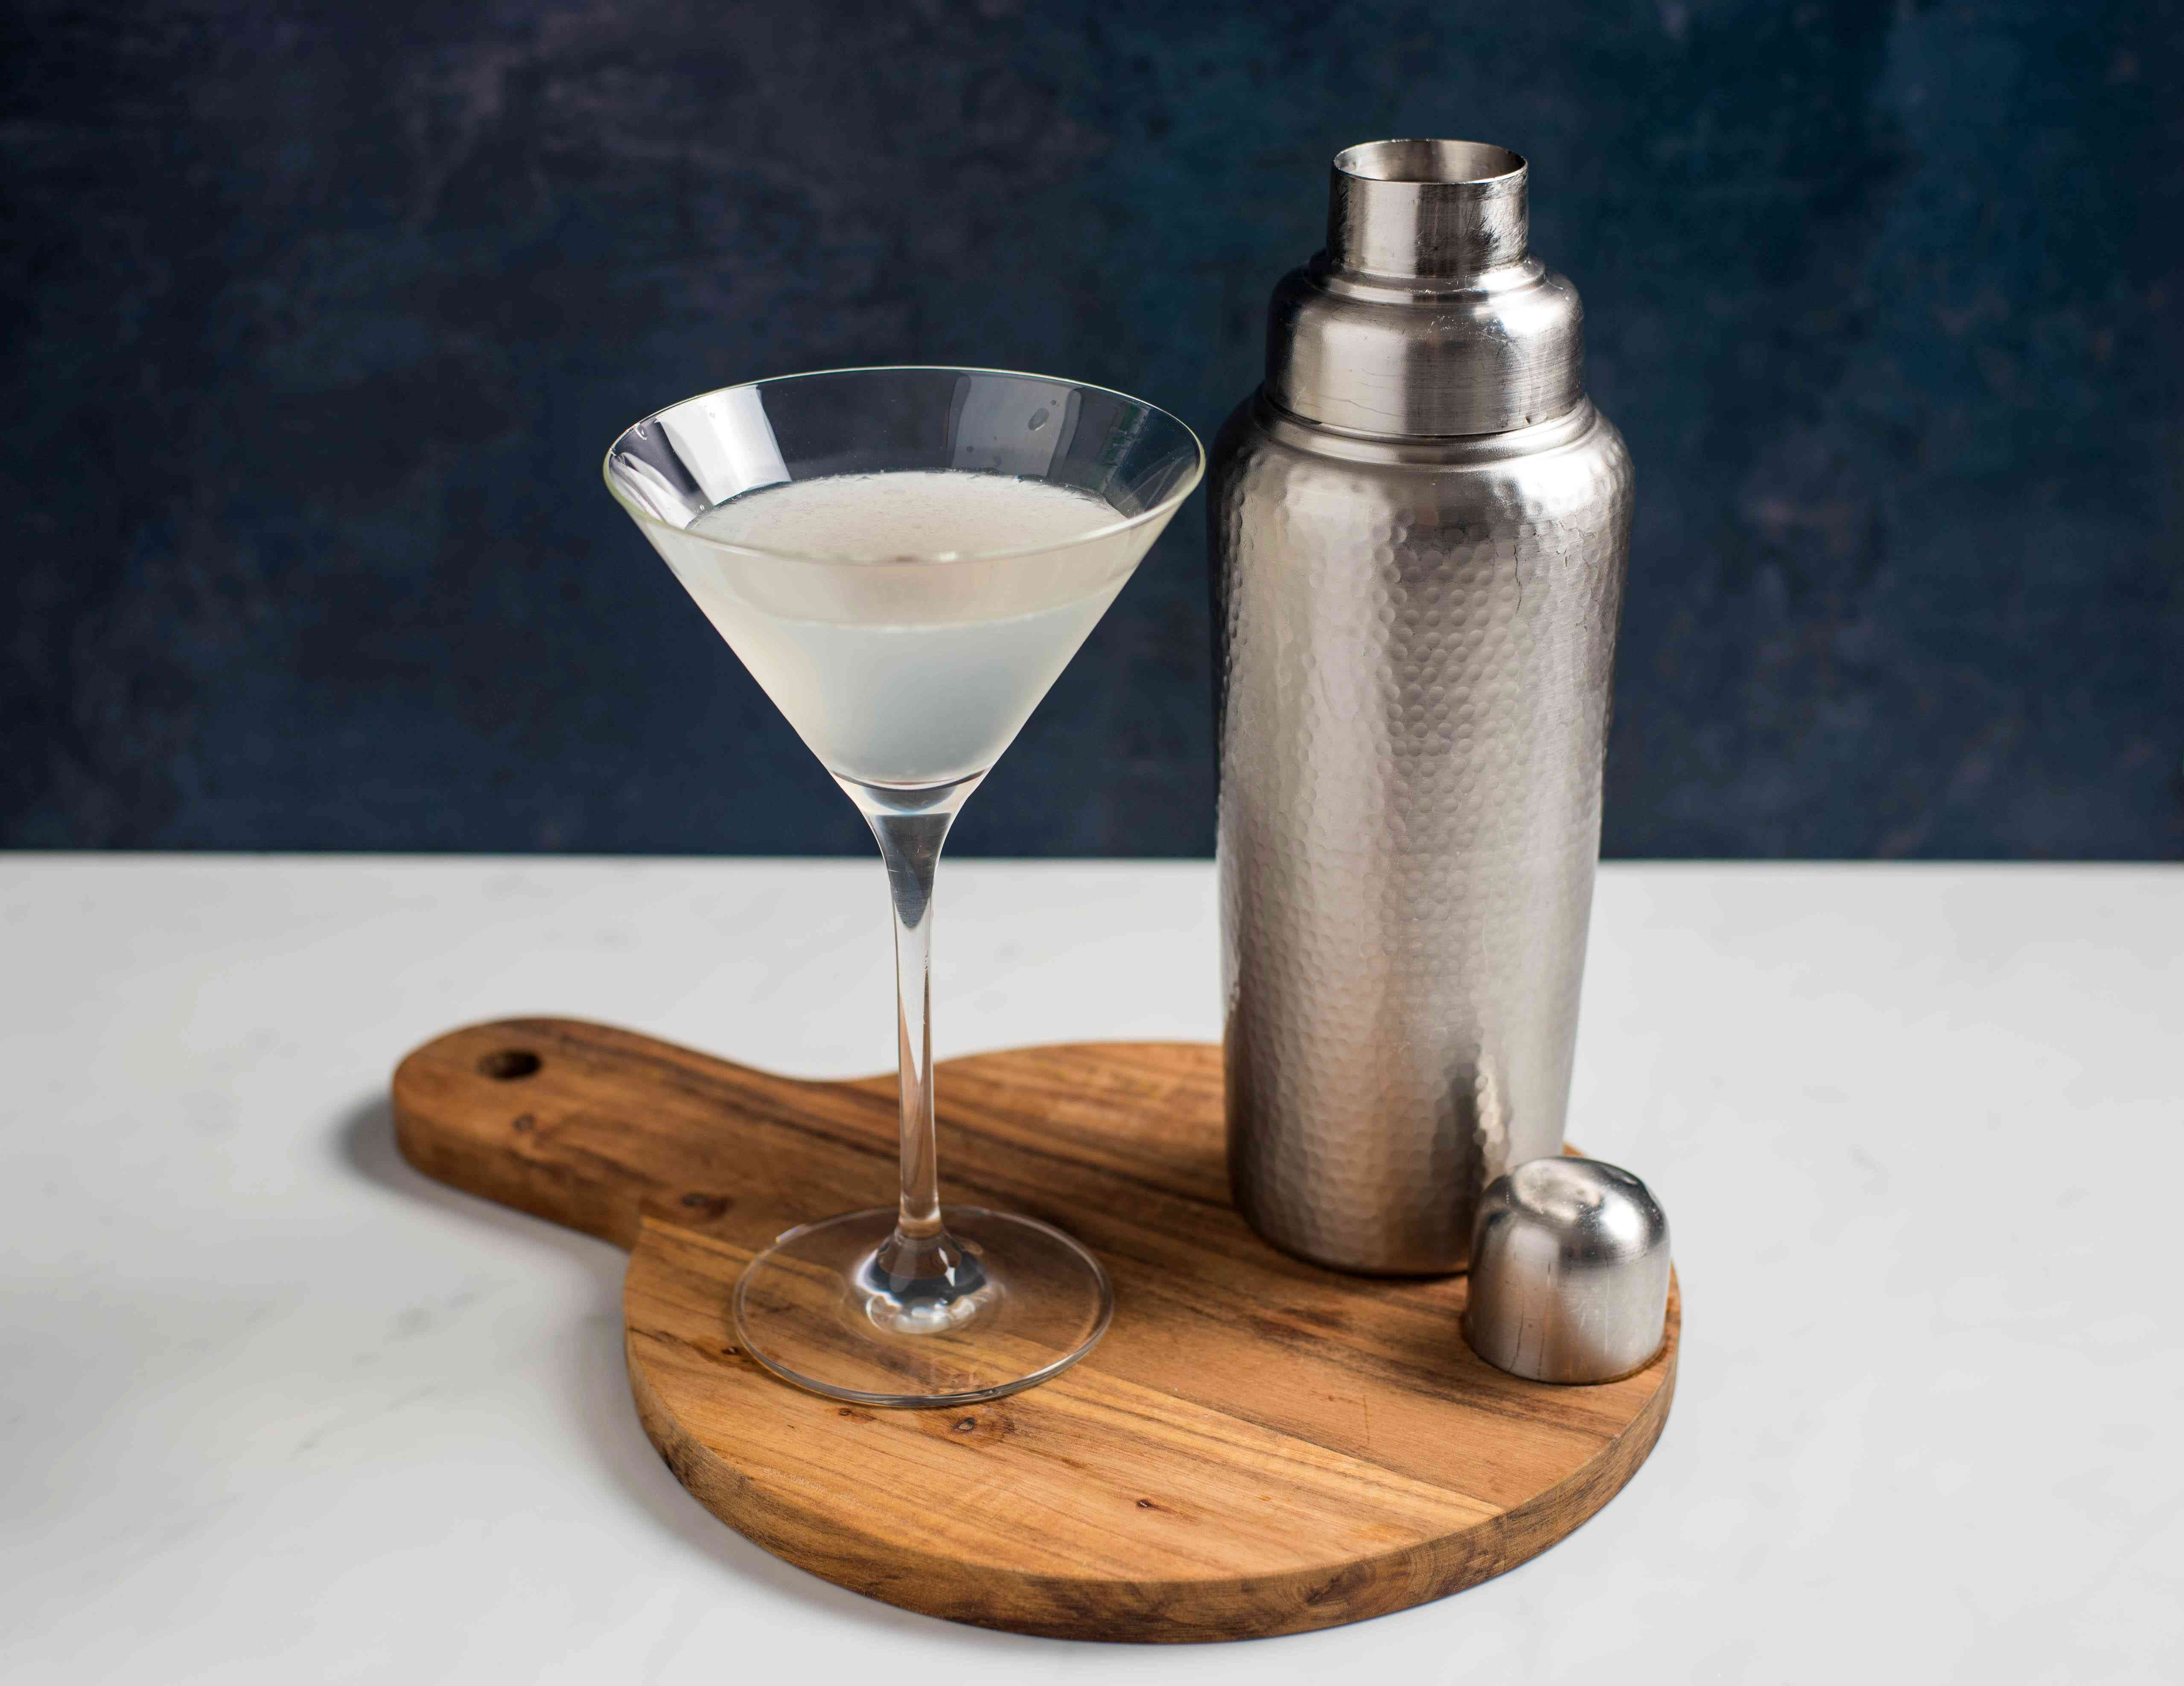 Strained cocktail in a glass